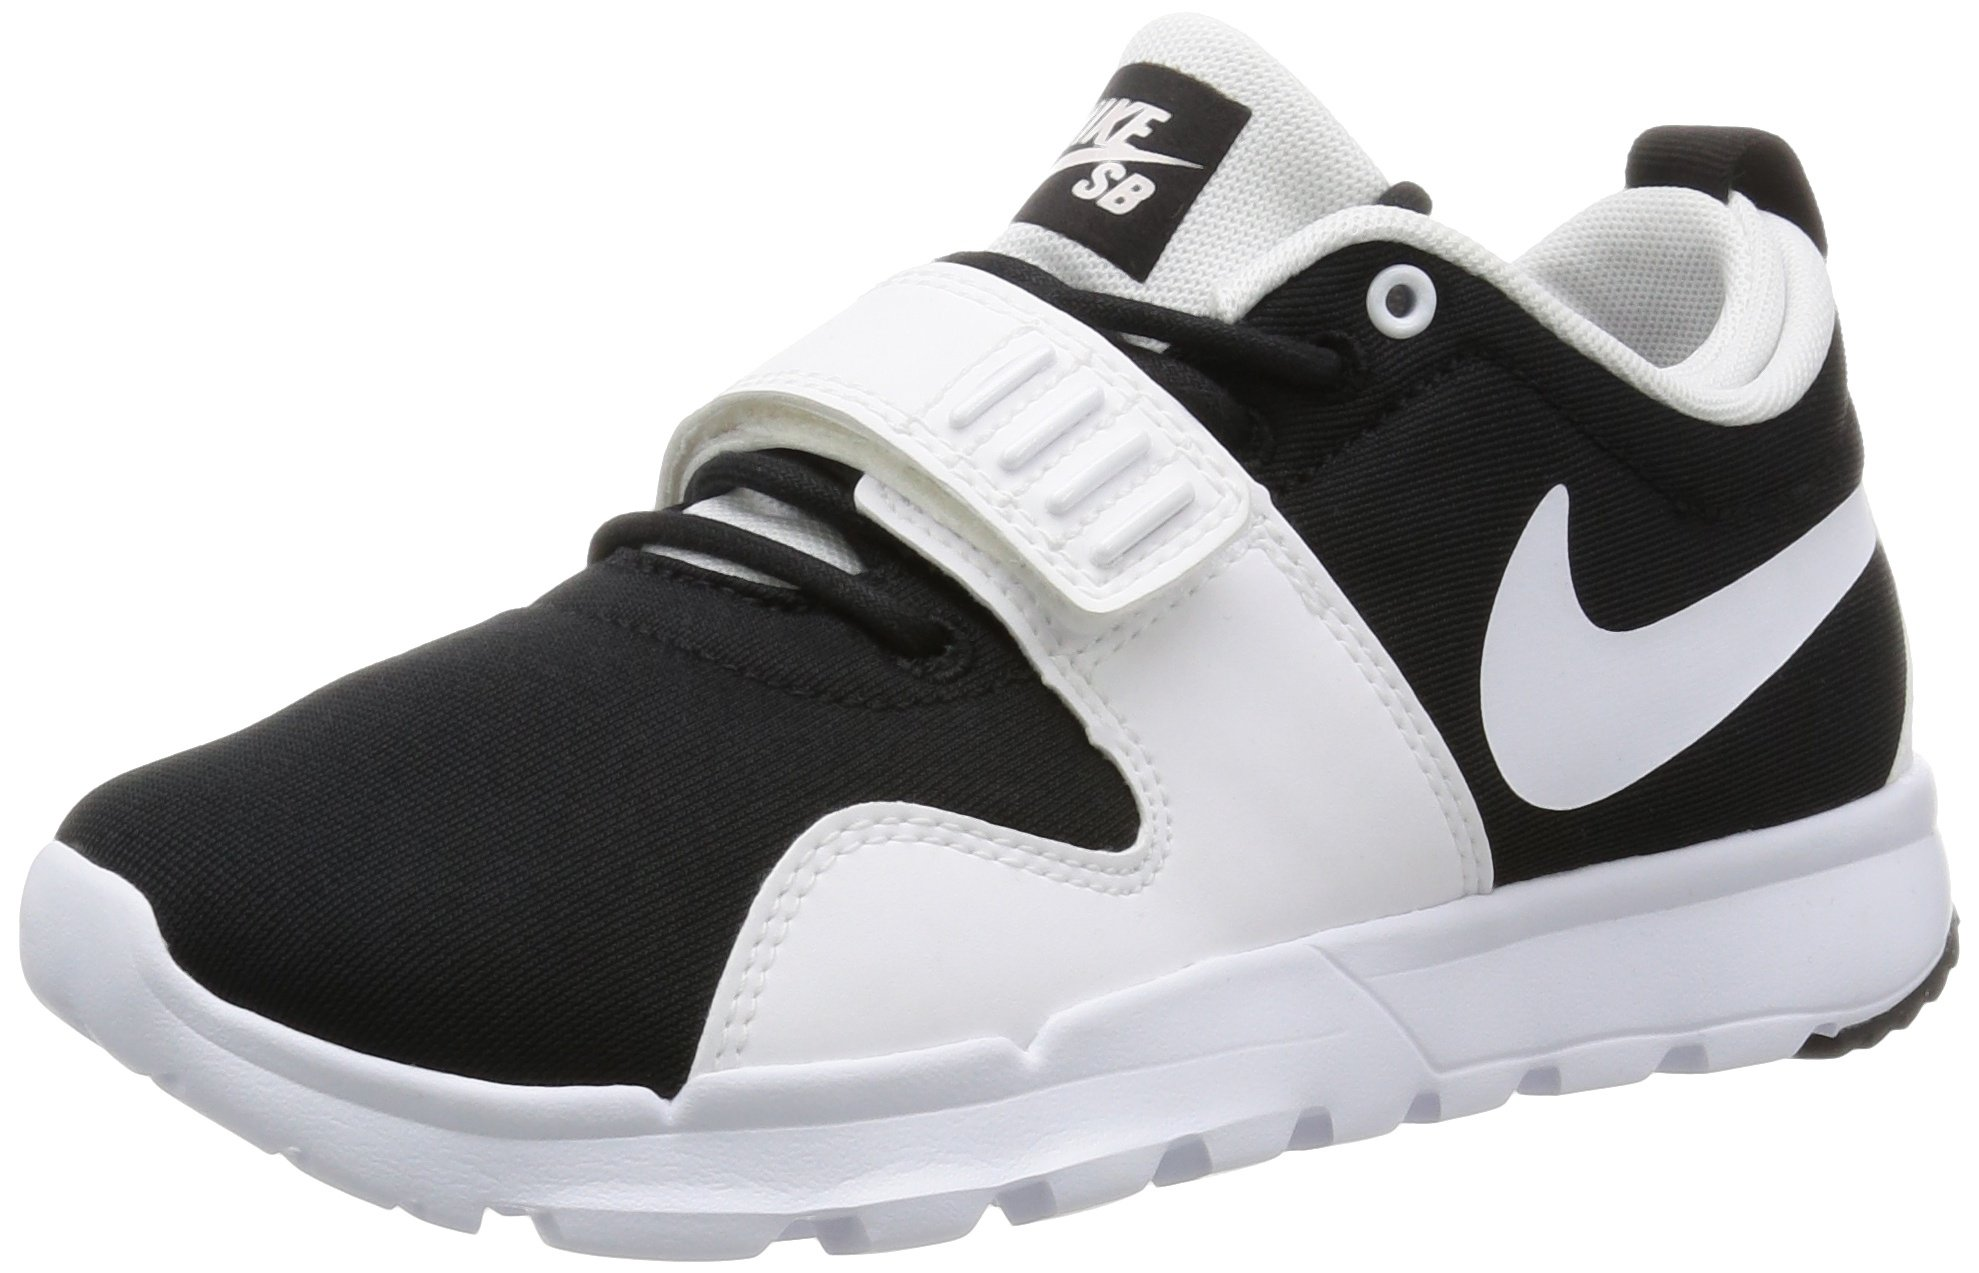 NIKE Trainerendor Mens Skateboarding-Shoes 616575-011_9.5 - Black/White by NIKE